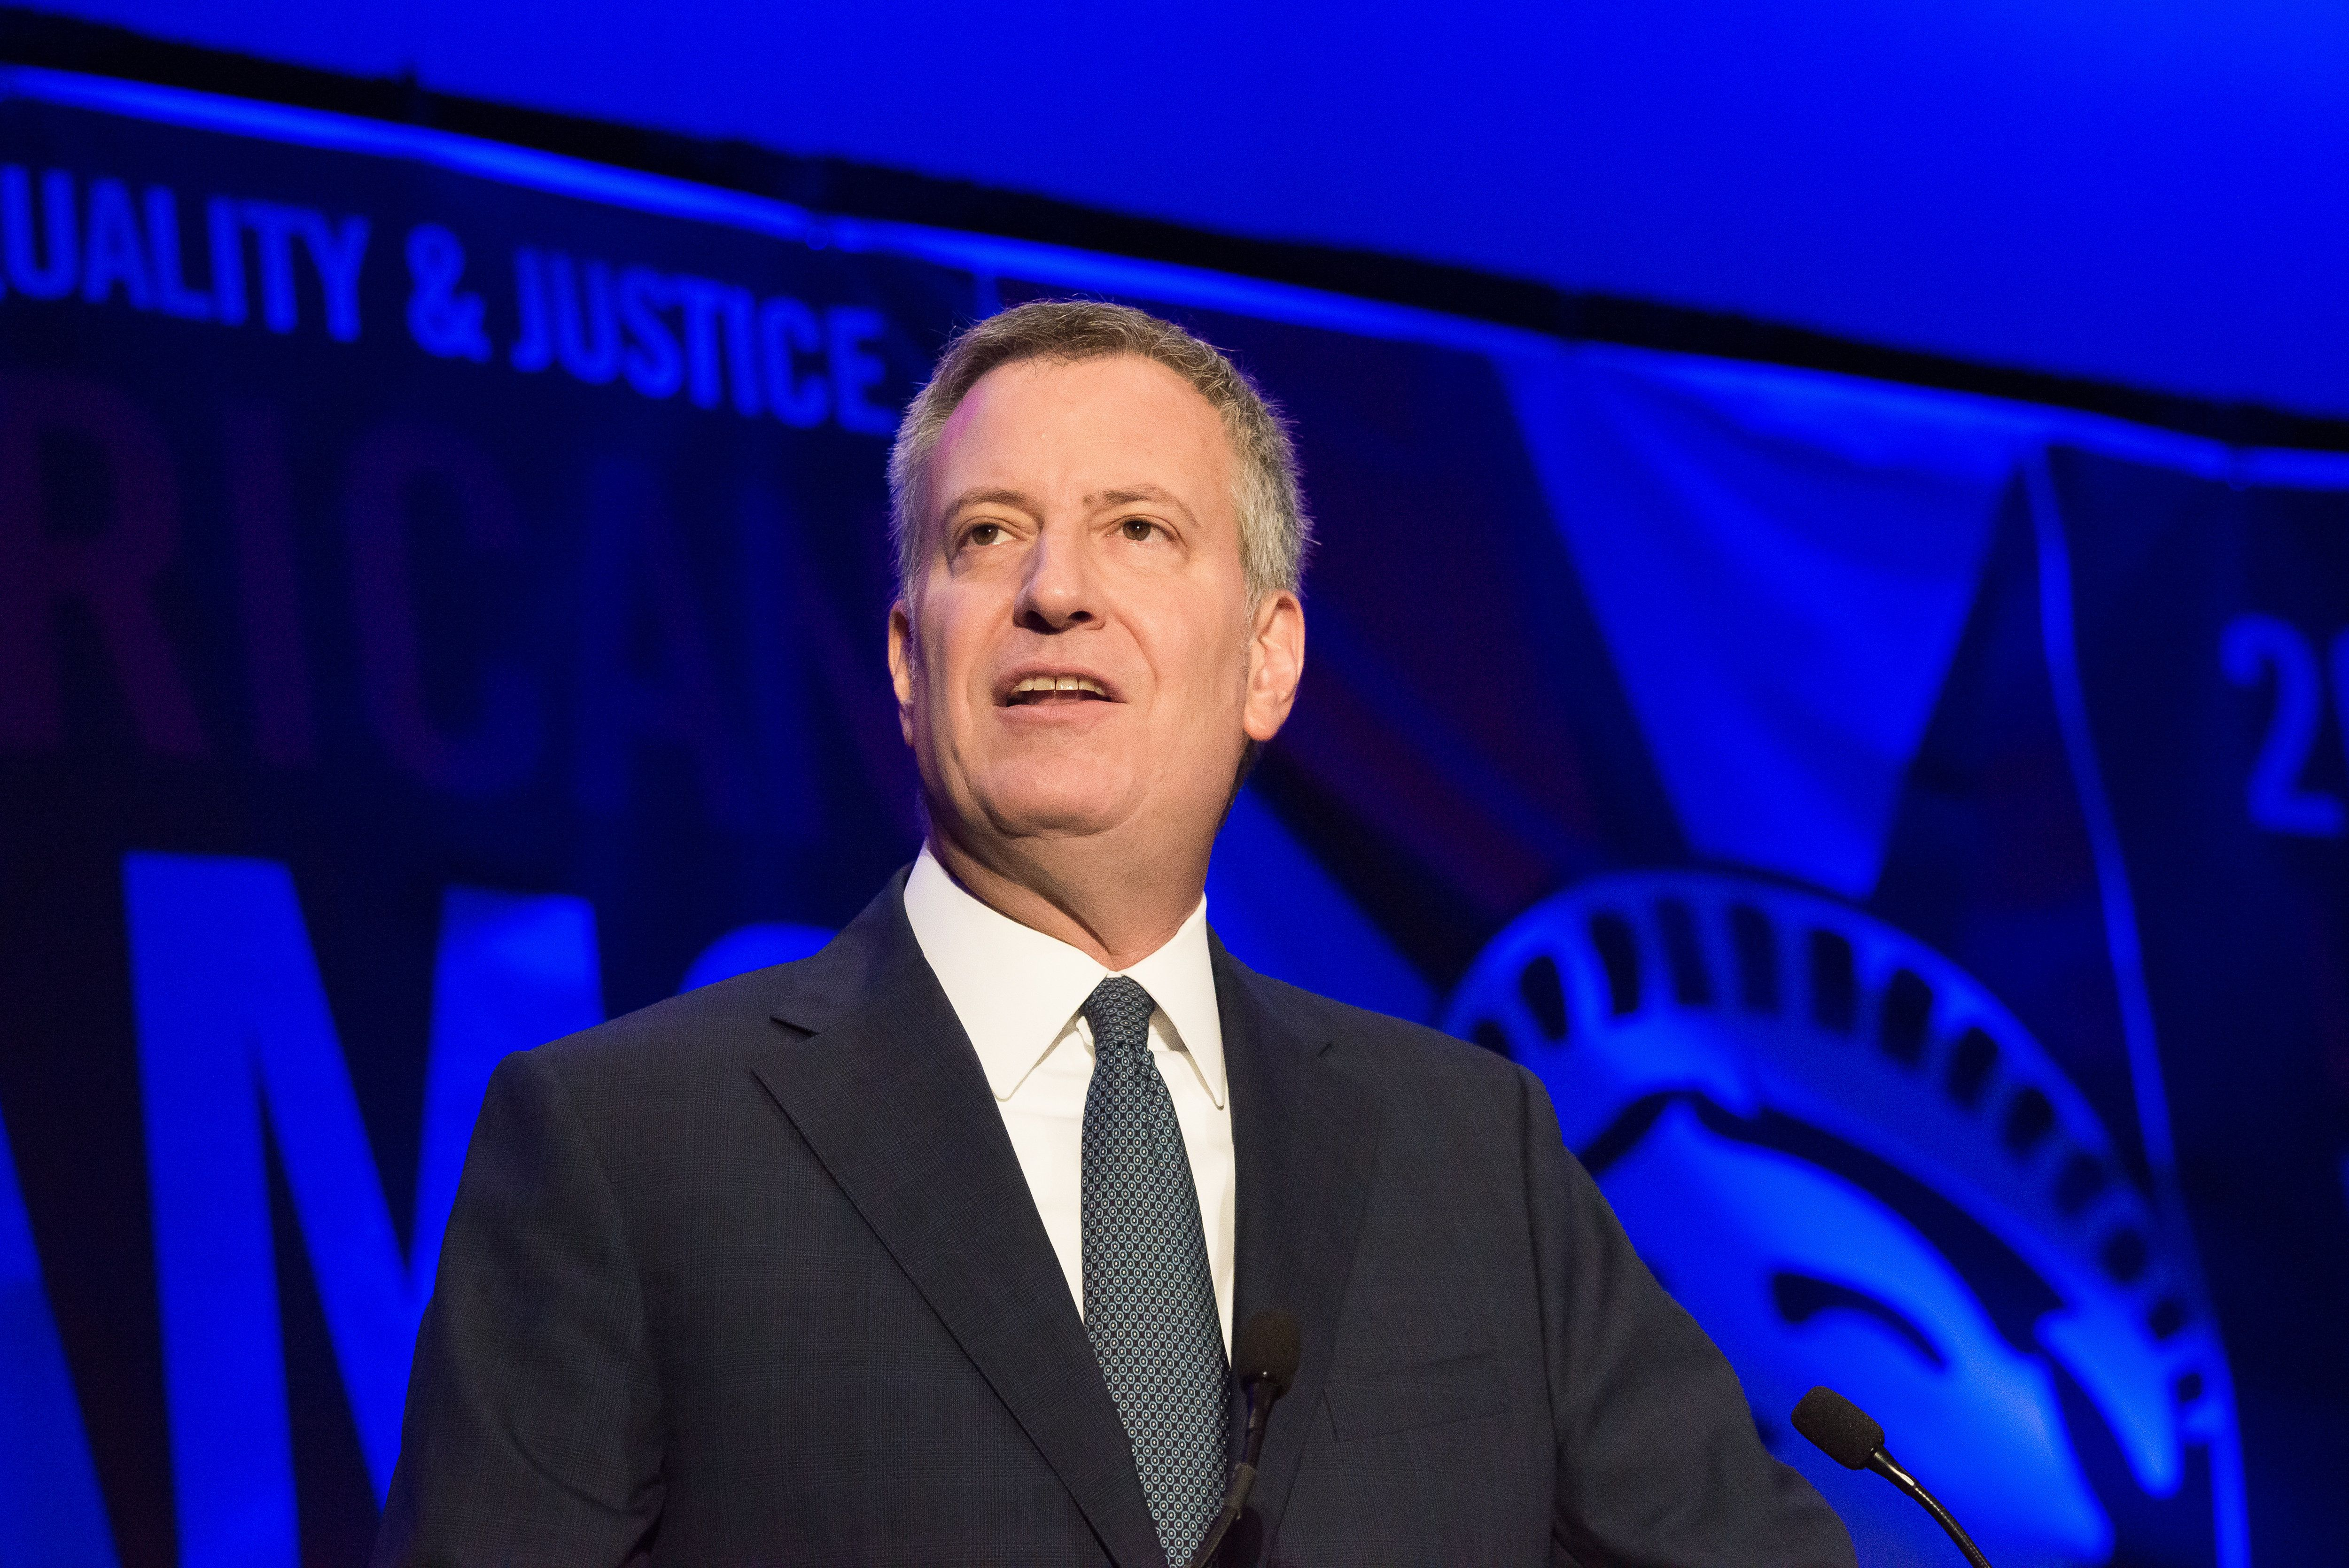 MARRIOTT HOTEL, BROOKLYN, NY, UNITED STATES - 2015/12/14: Mayor Bill de Blasio delivers remarks at the National Immigration Integration Conference. On the second day of the National Immigration Integration Conference held at the Marriott Hotel in Downtown Brooklyn, NYC Mayor Bill de Blasio delivered a keynote speech, announcing the city's commitment to welcoming newly-arrived Syrian refugees and the advent of the ActionNYC program seeking nationwide immigration reform. (Photo by Albin Lohr-Jones/Pacific Press/LightRocket via Getty Images)